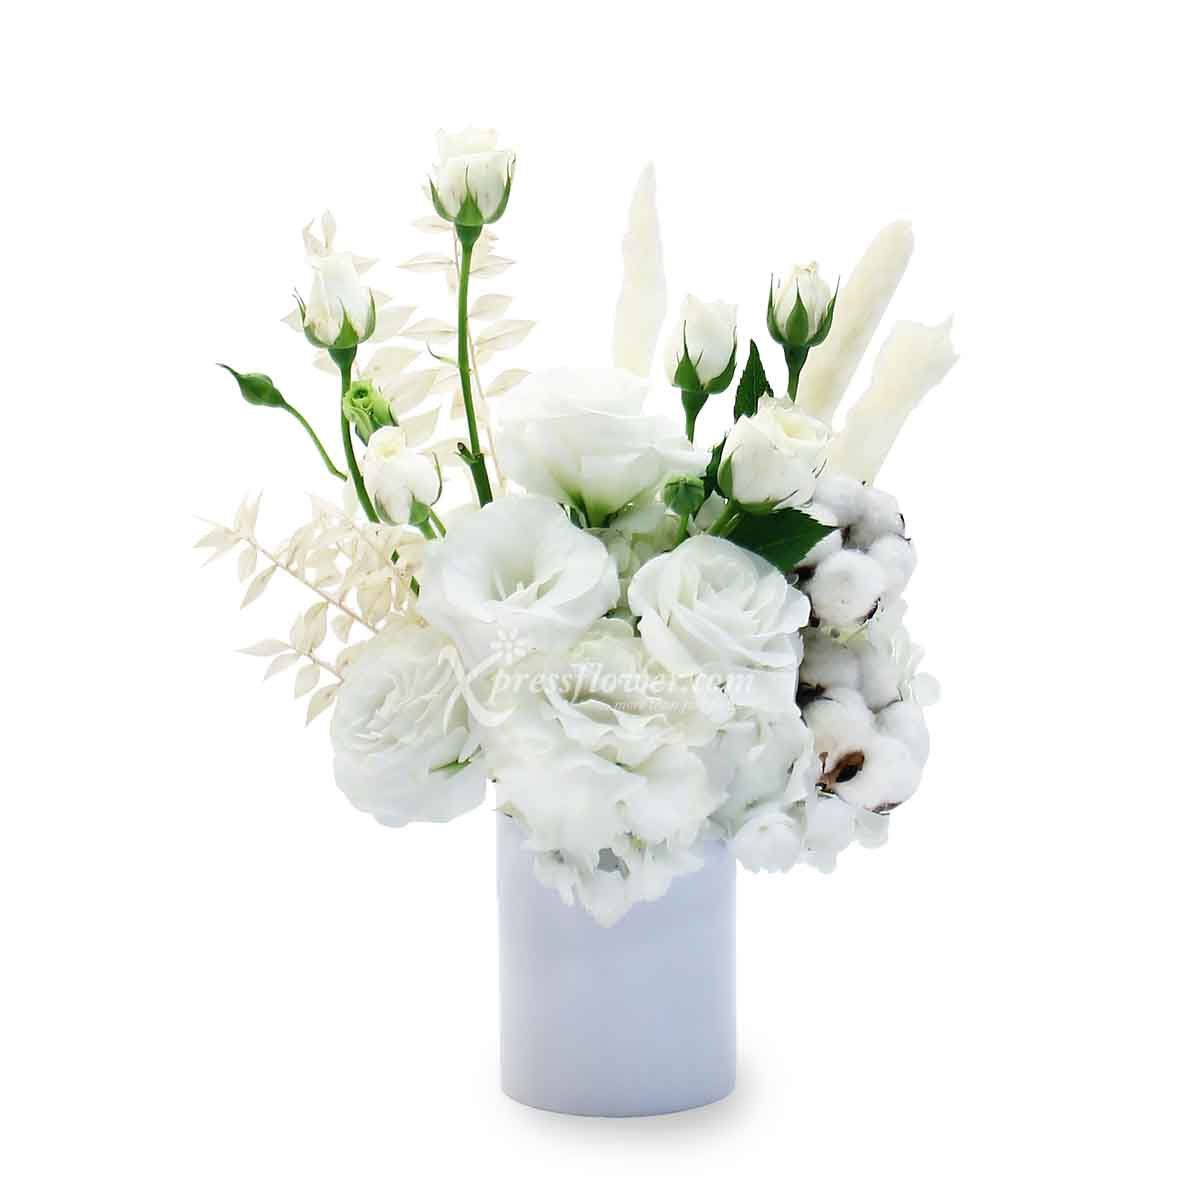 Bloom with Grace (White Rose Spray Flower Arrangement)